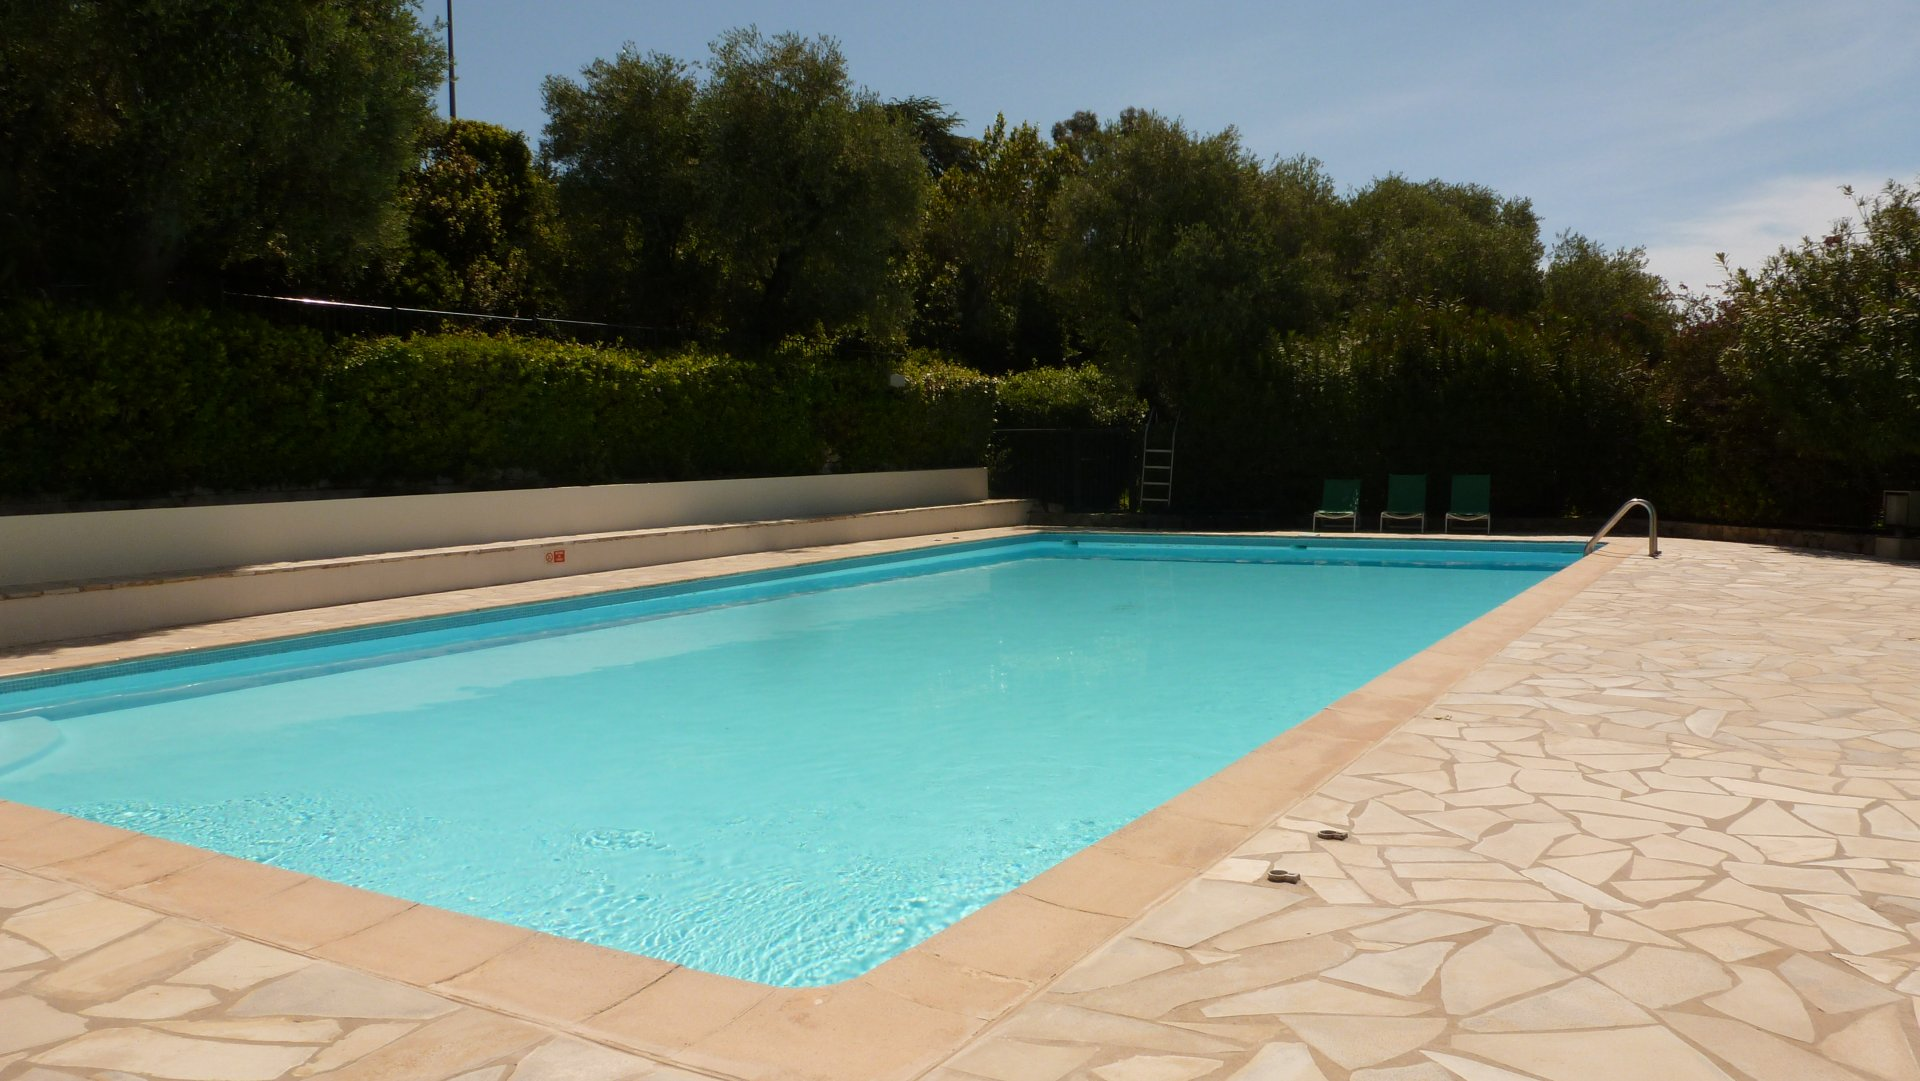 CANNES OXFORD - 3P 90M² + 20M² PANORAMIC SEA VIEW TERRACE